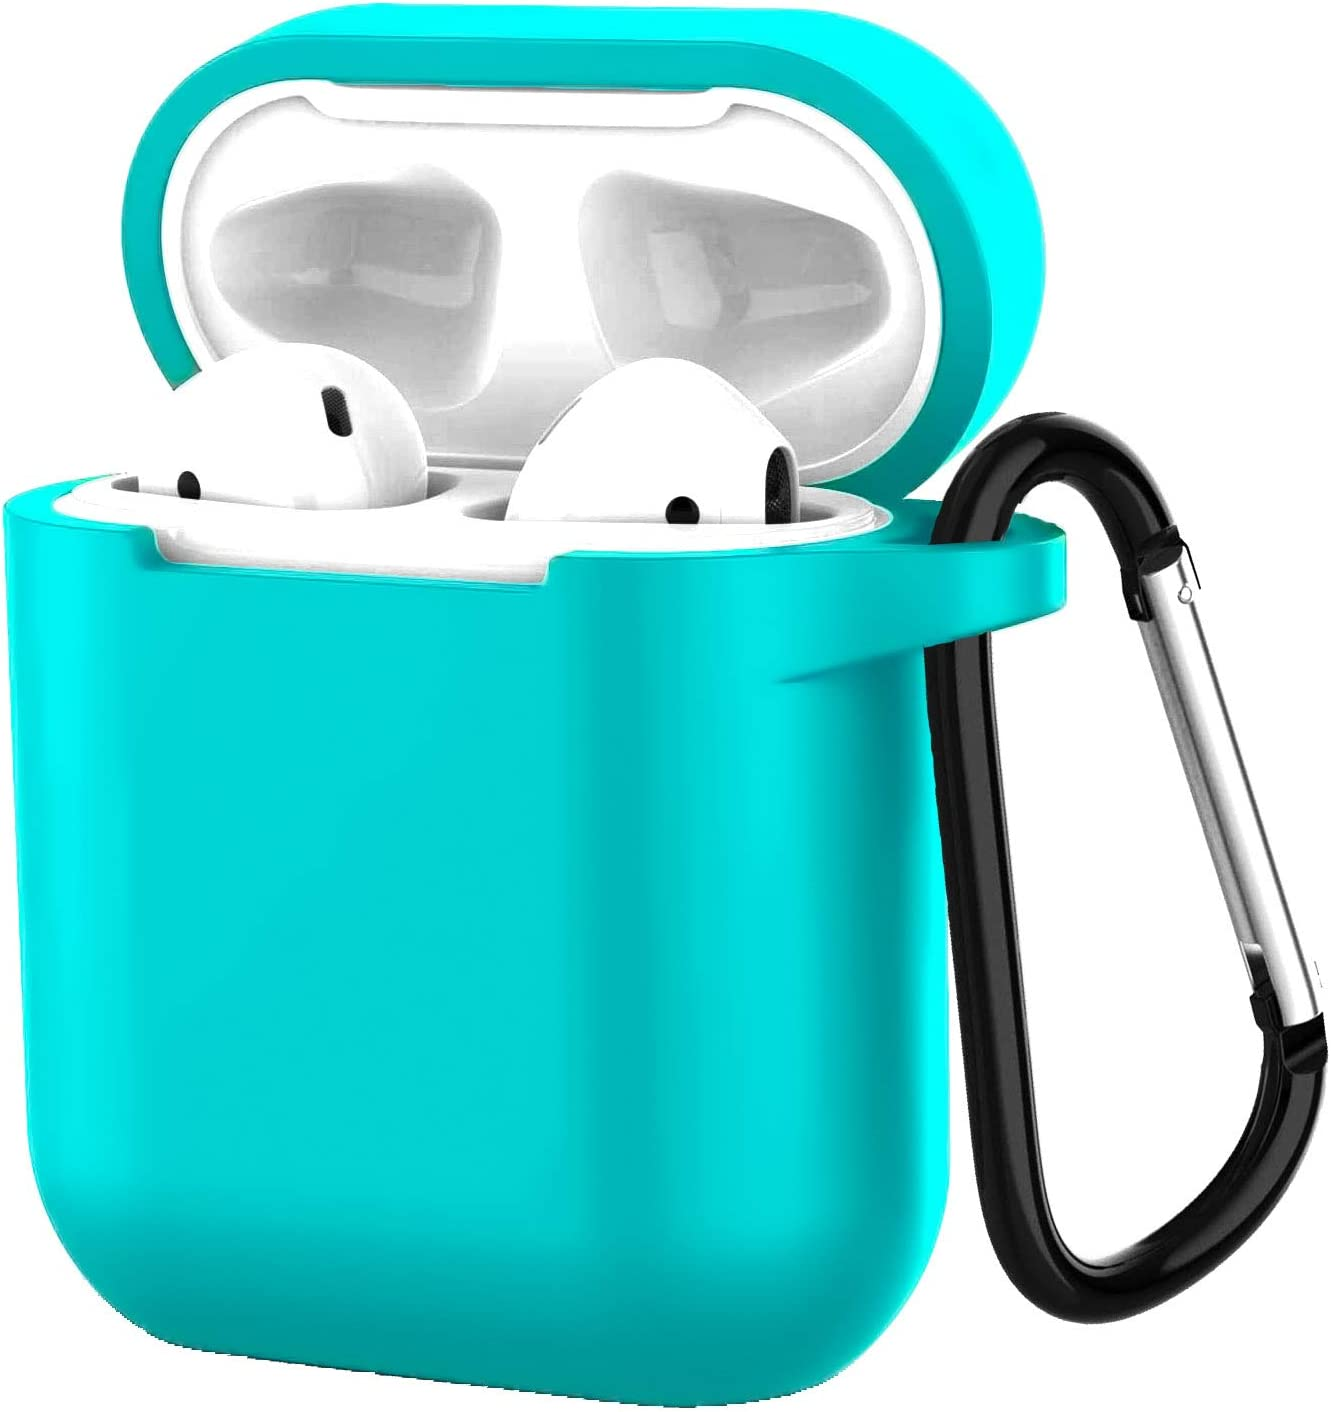 Compatible with Airpods 1/2 USB Wire Charging Silicone Case Protective Silicone Cover and Shockproof Skin Cover with Anti-Lost Carabiner Keychain - Blue